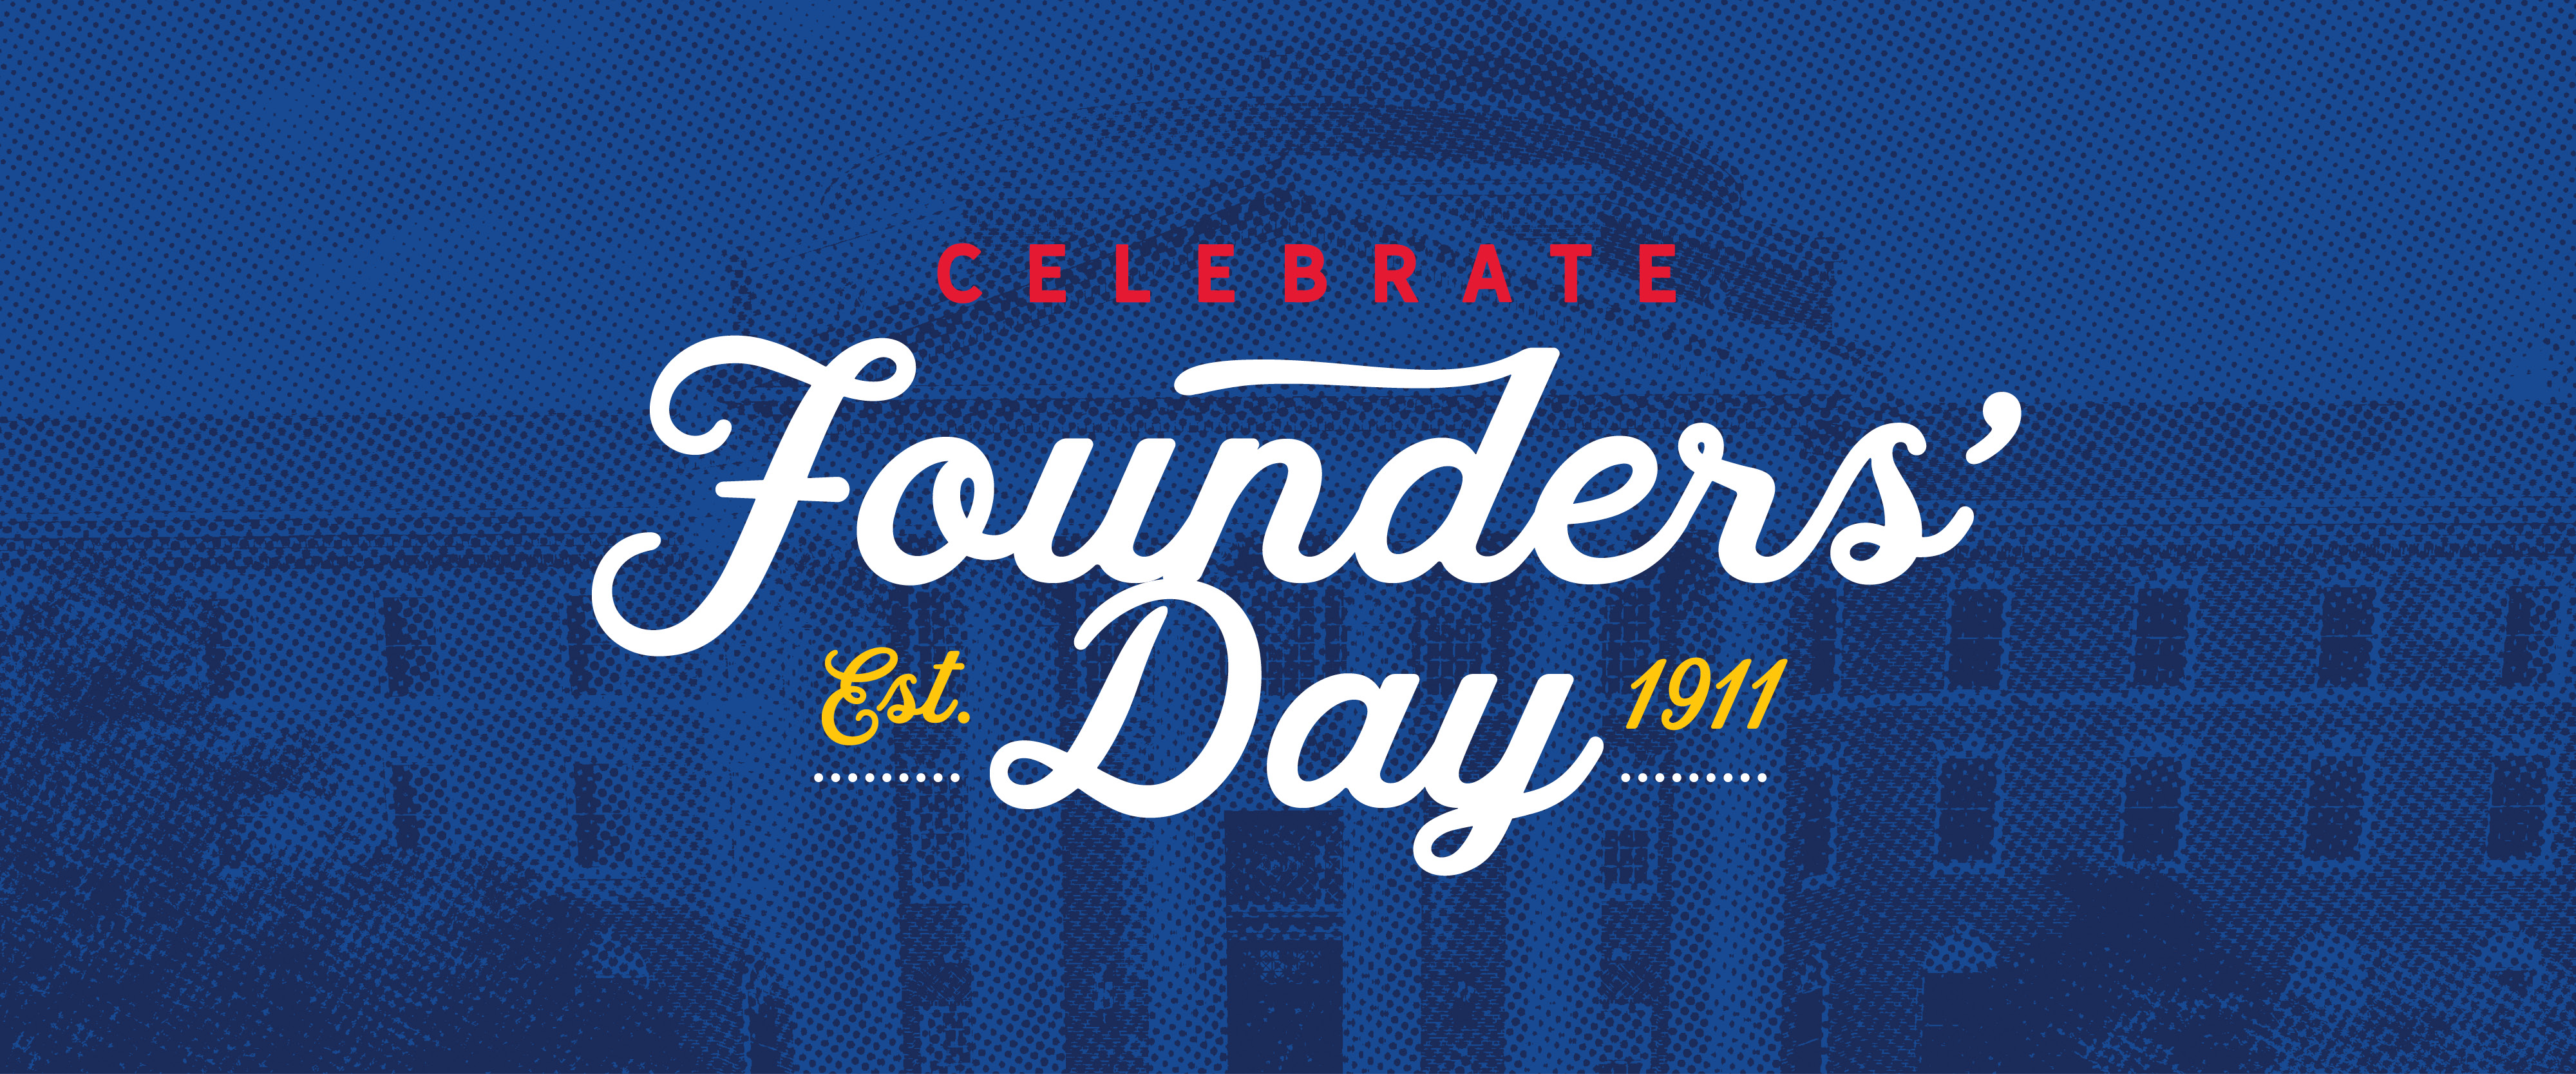 Celebrate Founders' Day